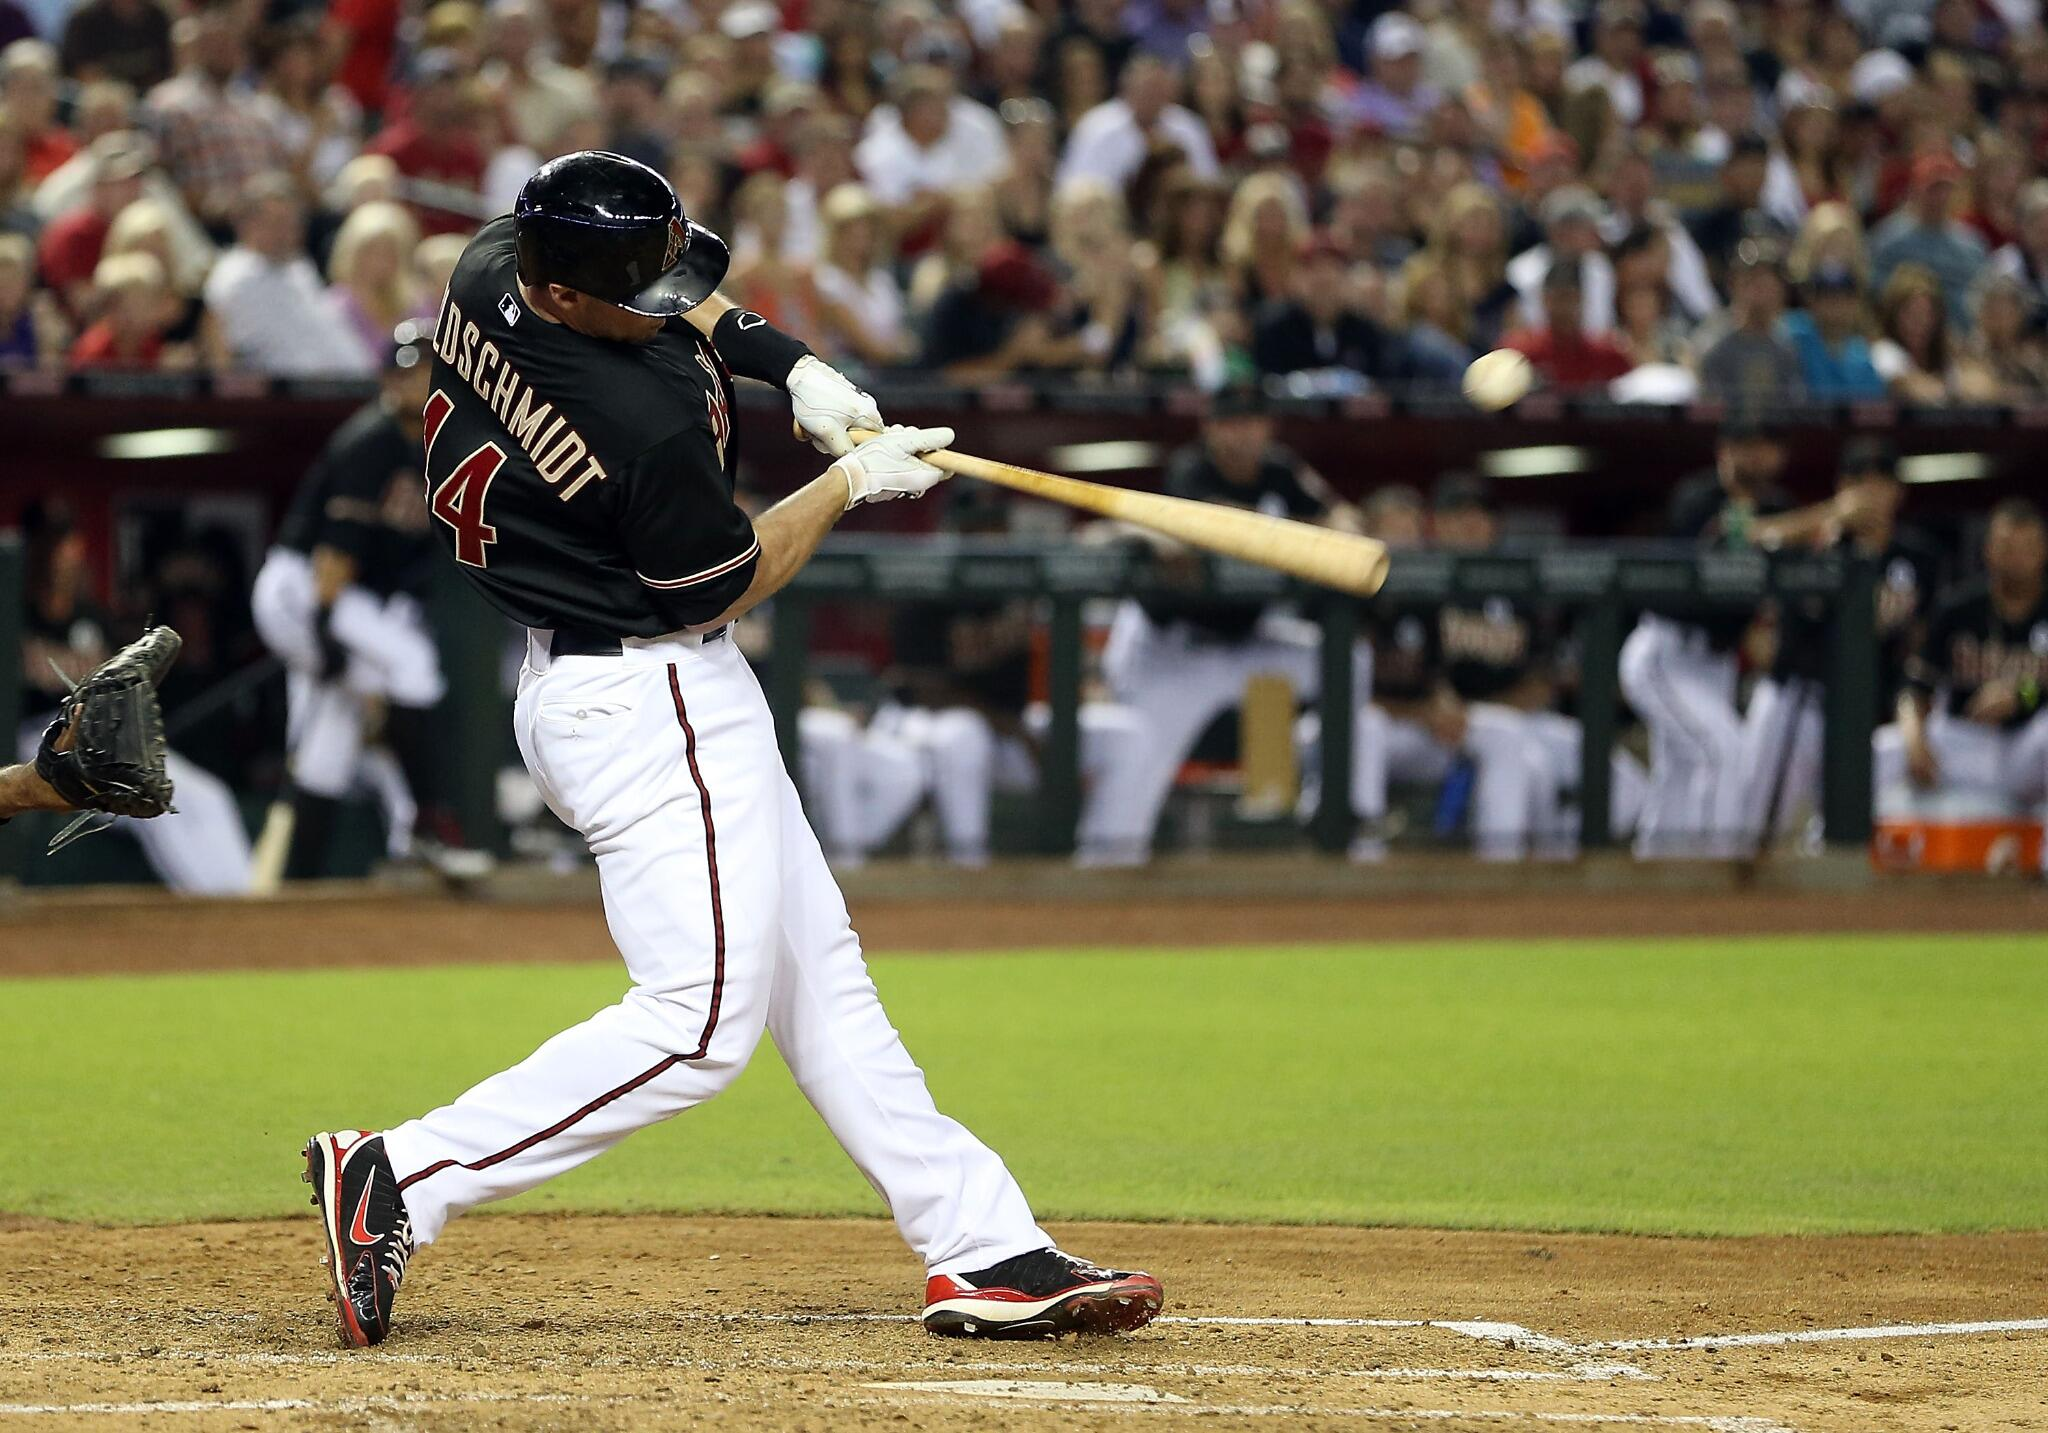 #Dbacks first baseman Paul Goldschmidt has been selected as a reserve for the 2013 NL All-Star team. #iBackGoldy http://t.co/hkgc0Nu4jY